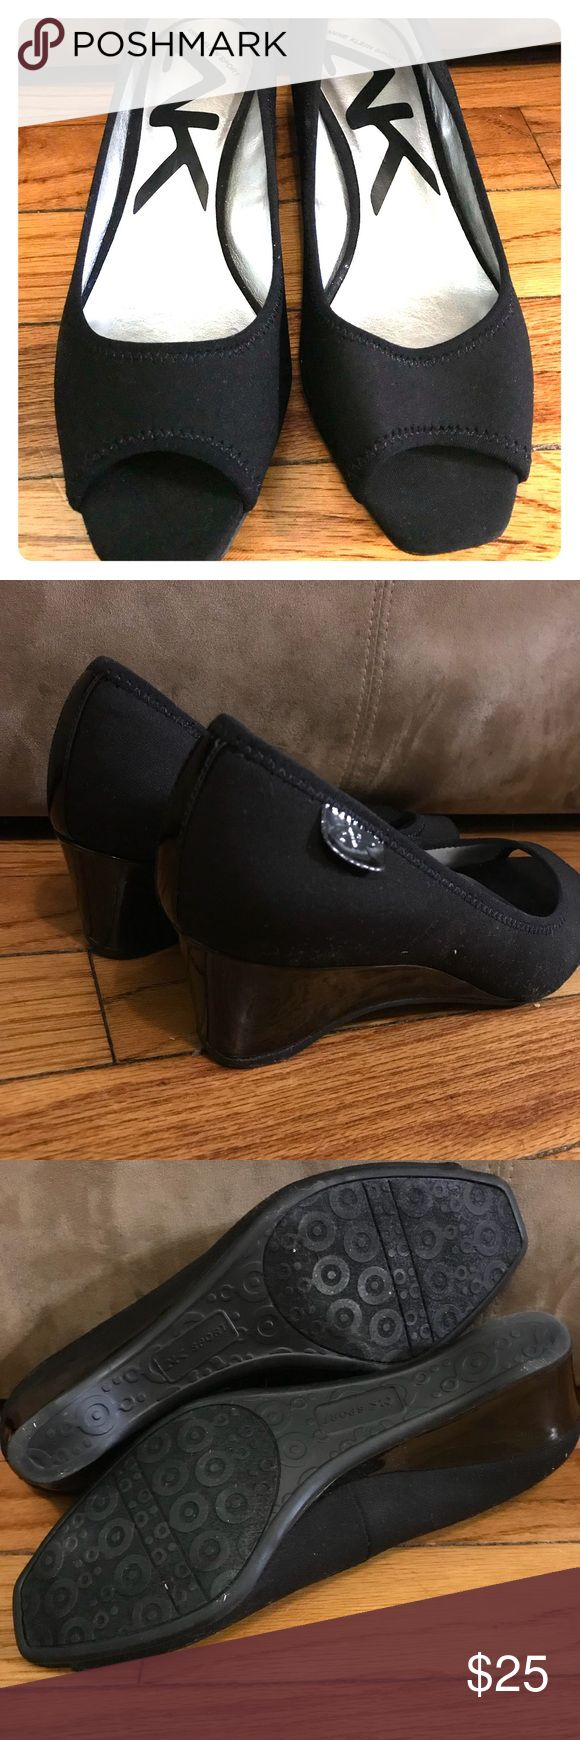 New-Anne Klein Sport Black peep toe wedge These were only tried on..I have too many shoes and these have just sat in my closet! My loss is your gain! Size 7  Anne Klein Sport Black peep toe wedge! 2in wedge! Anne Klein Sport Shoes Wedges